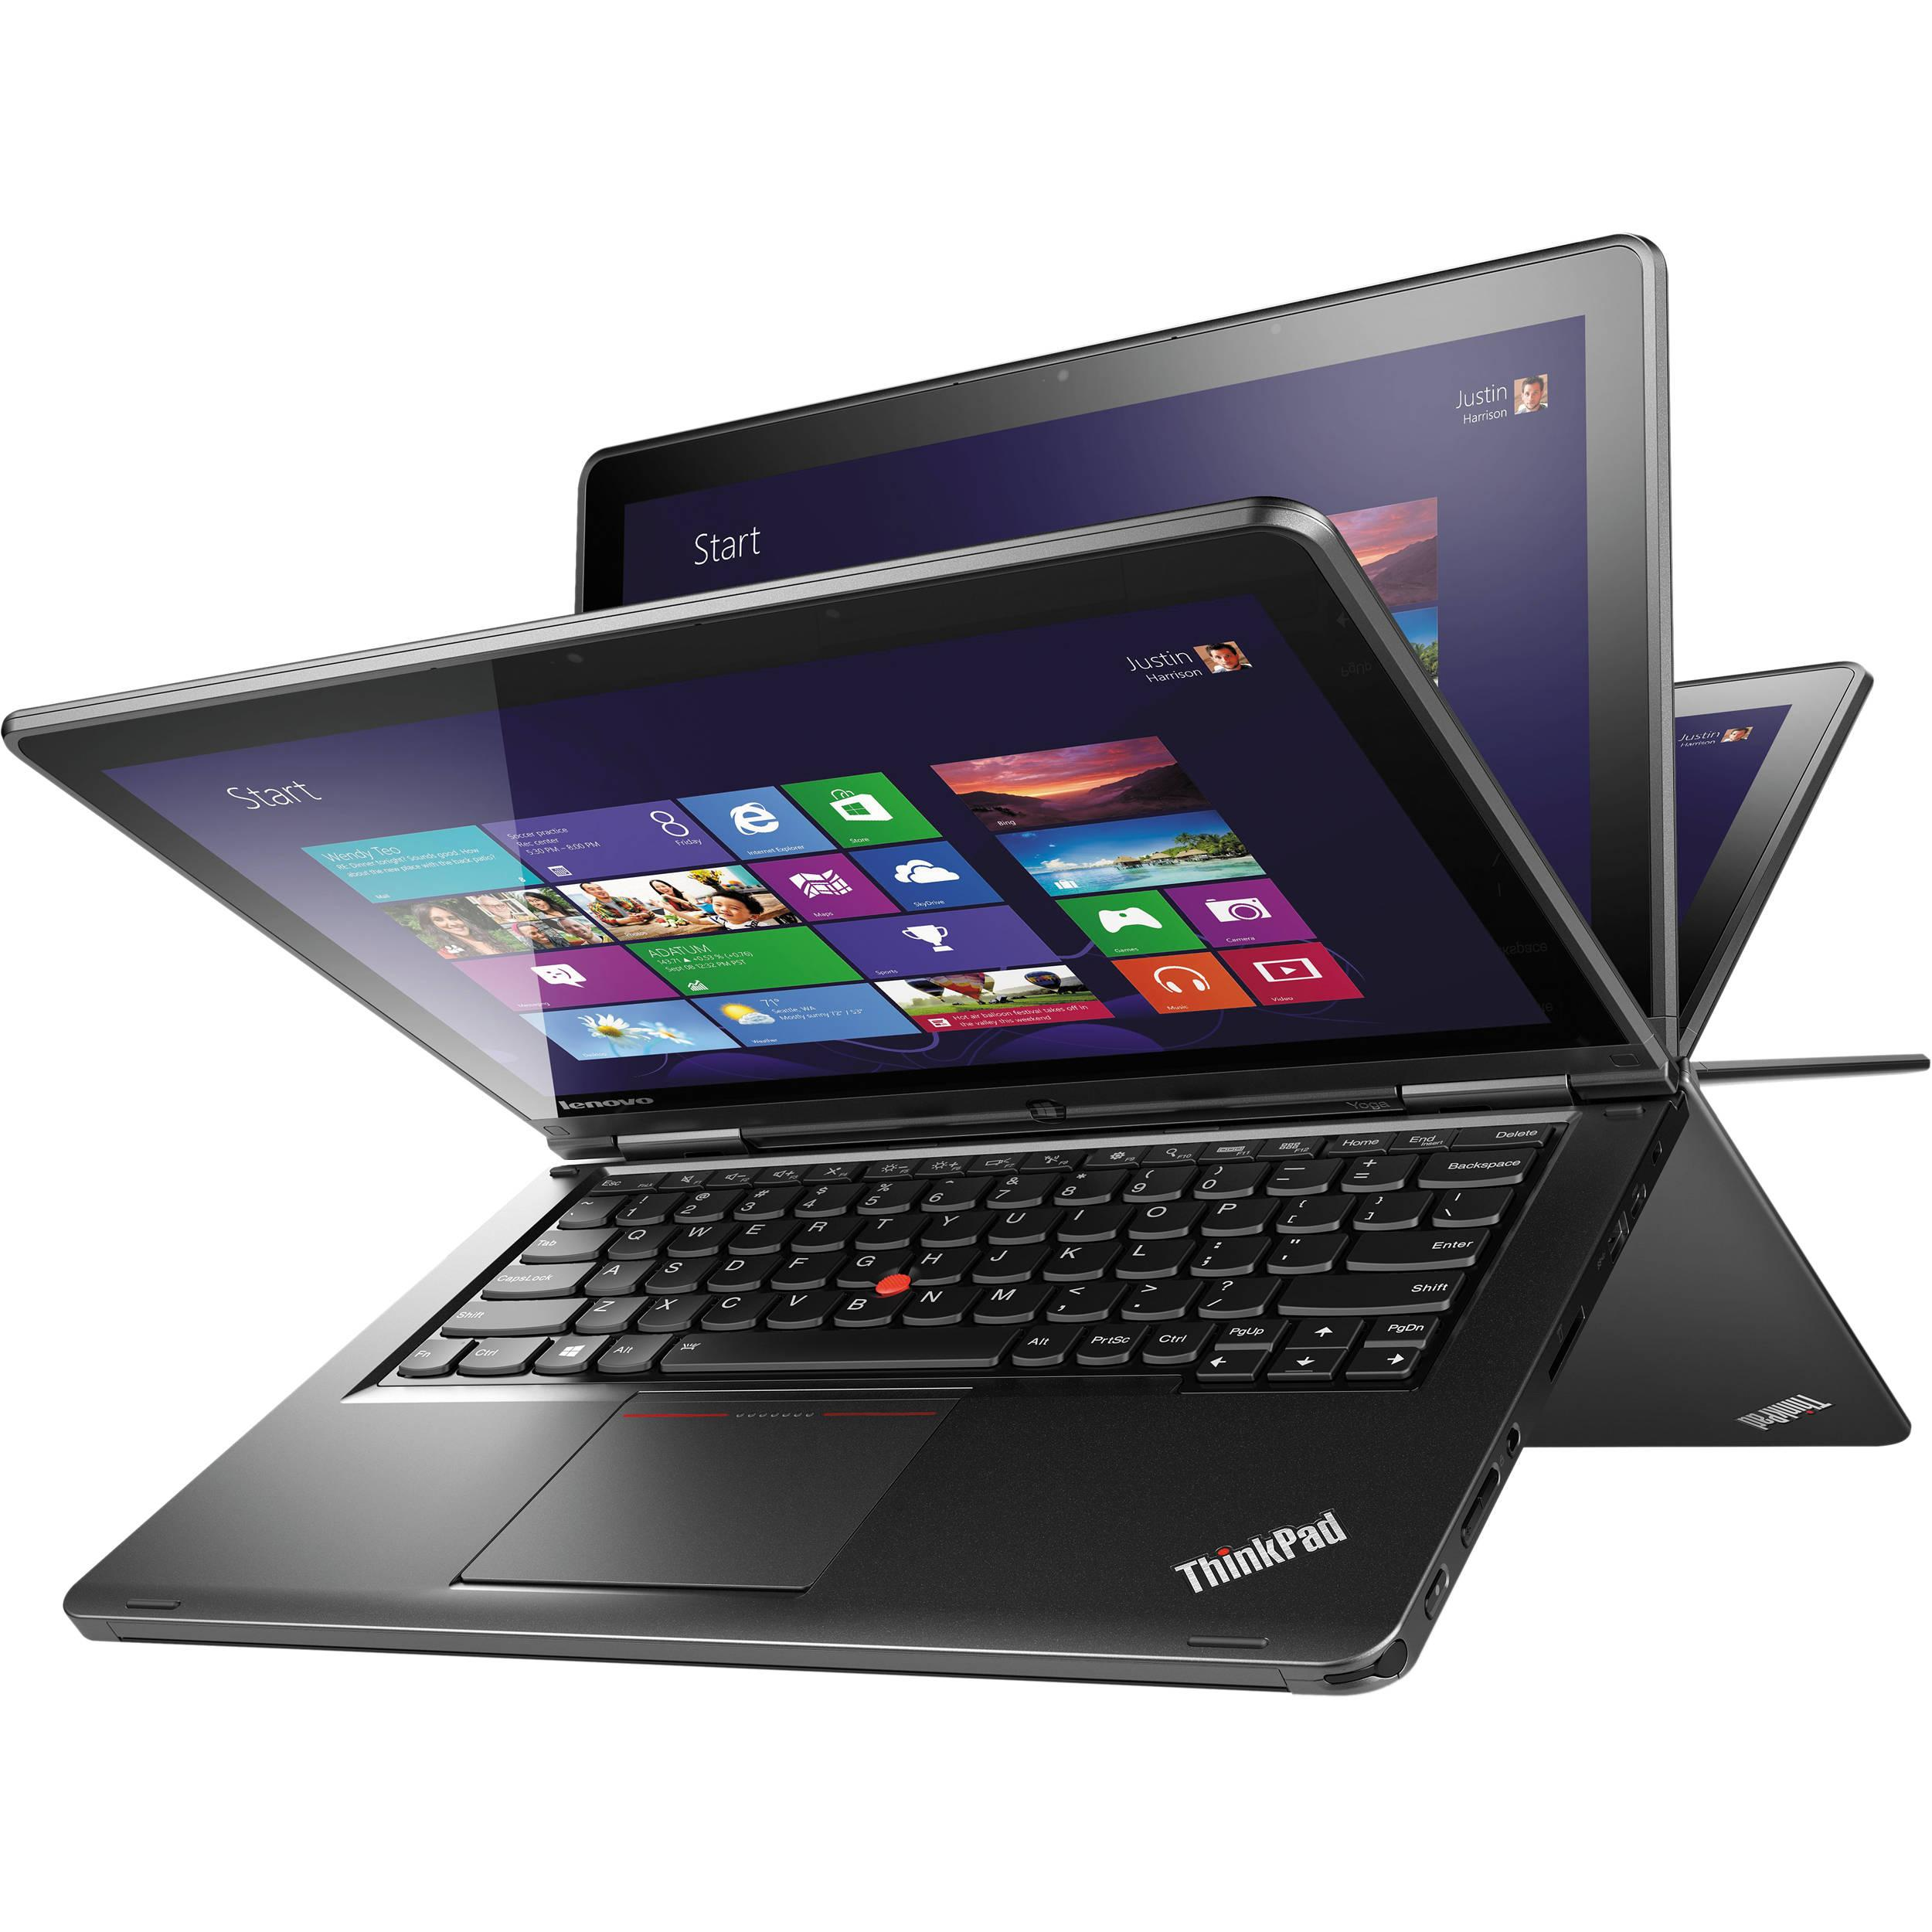 "[Refurbished] Lenovo ThinkPad Yoga Ultrabook/Tablet Touch & Pen- 12.5"" FHD  i5-4th Gen 4GB RAM 128GB SSD"